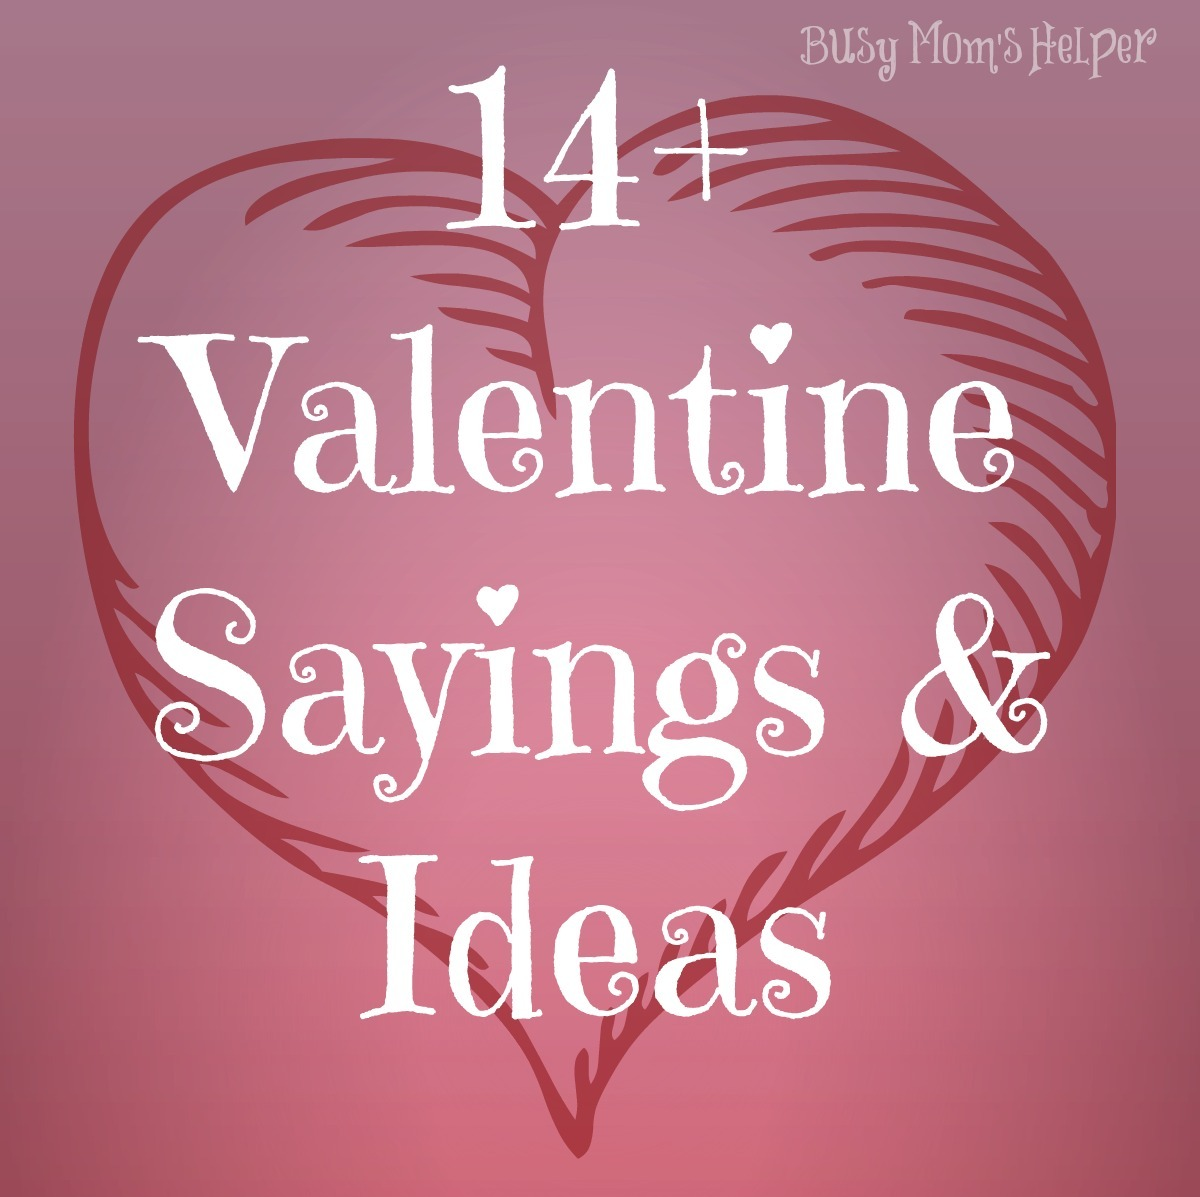 Free Printable Valentine S Quote: 14 Gifts Of Valentines With Free Printables, Plus MORE